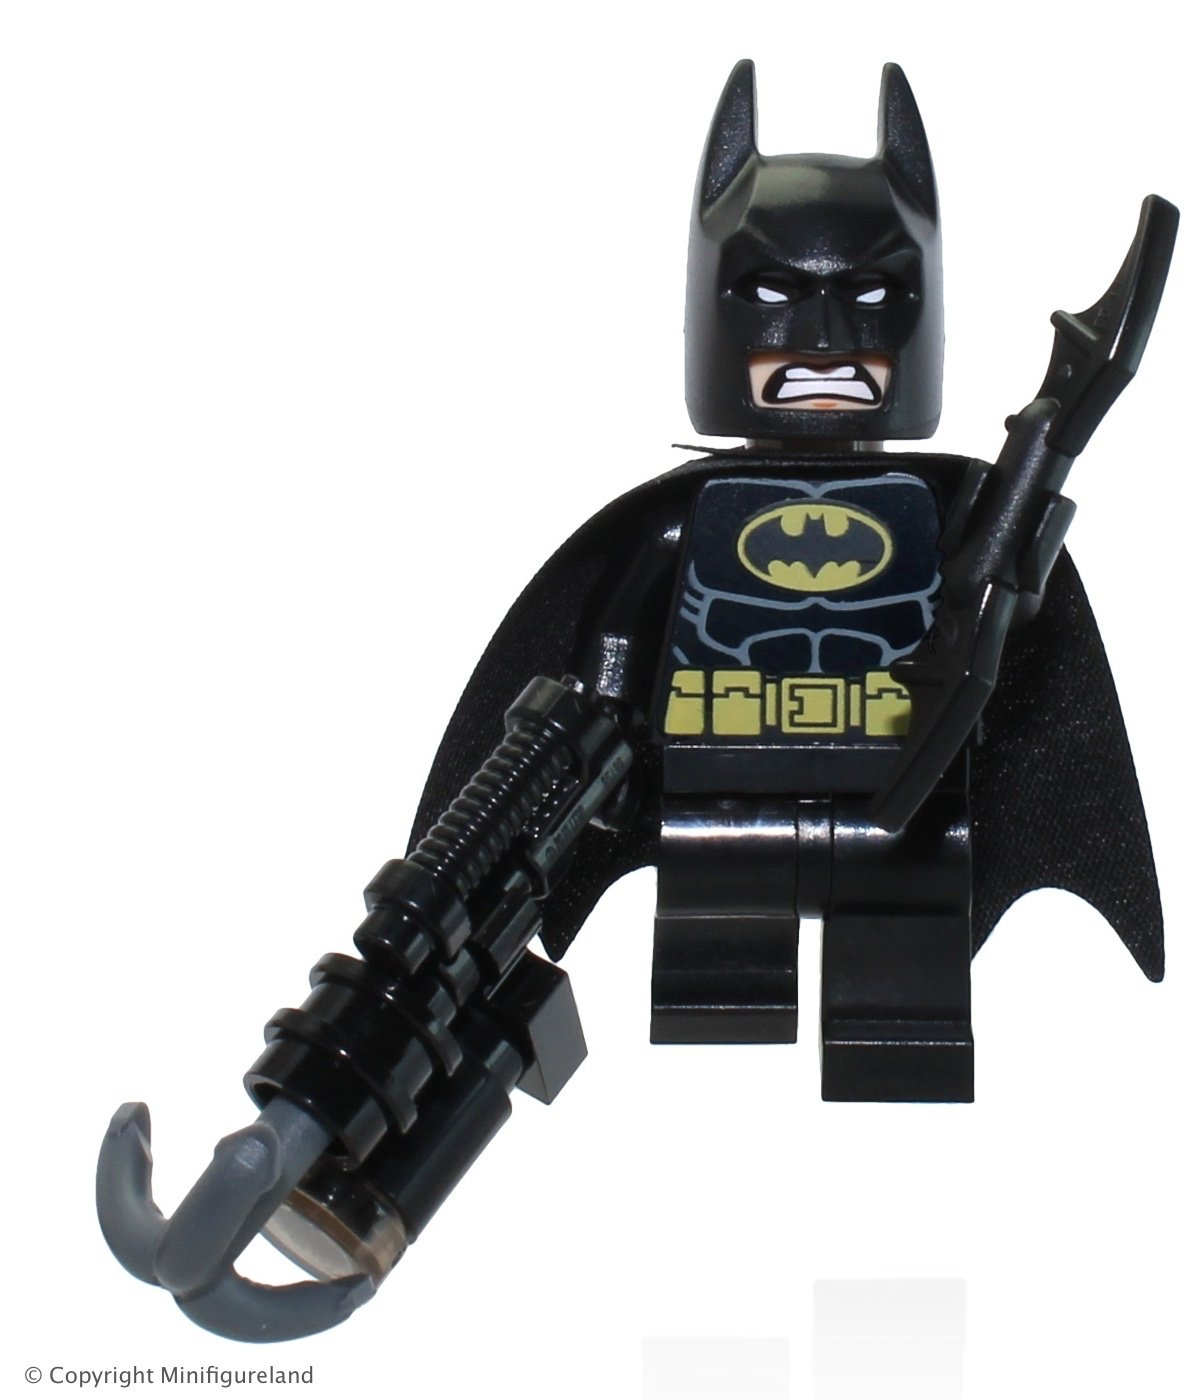 The LEGO Movie - Batman Minifigure with Dual-sided Face (Smiling and Scowling) with Batarang and Harpoon Gun from set 70817